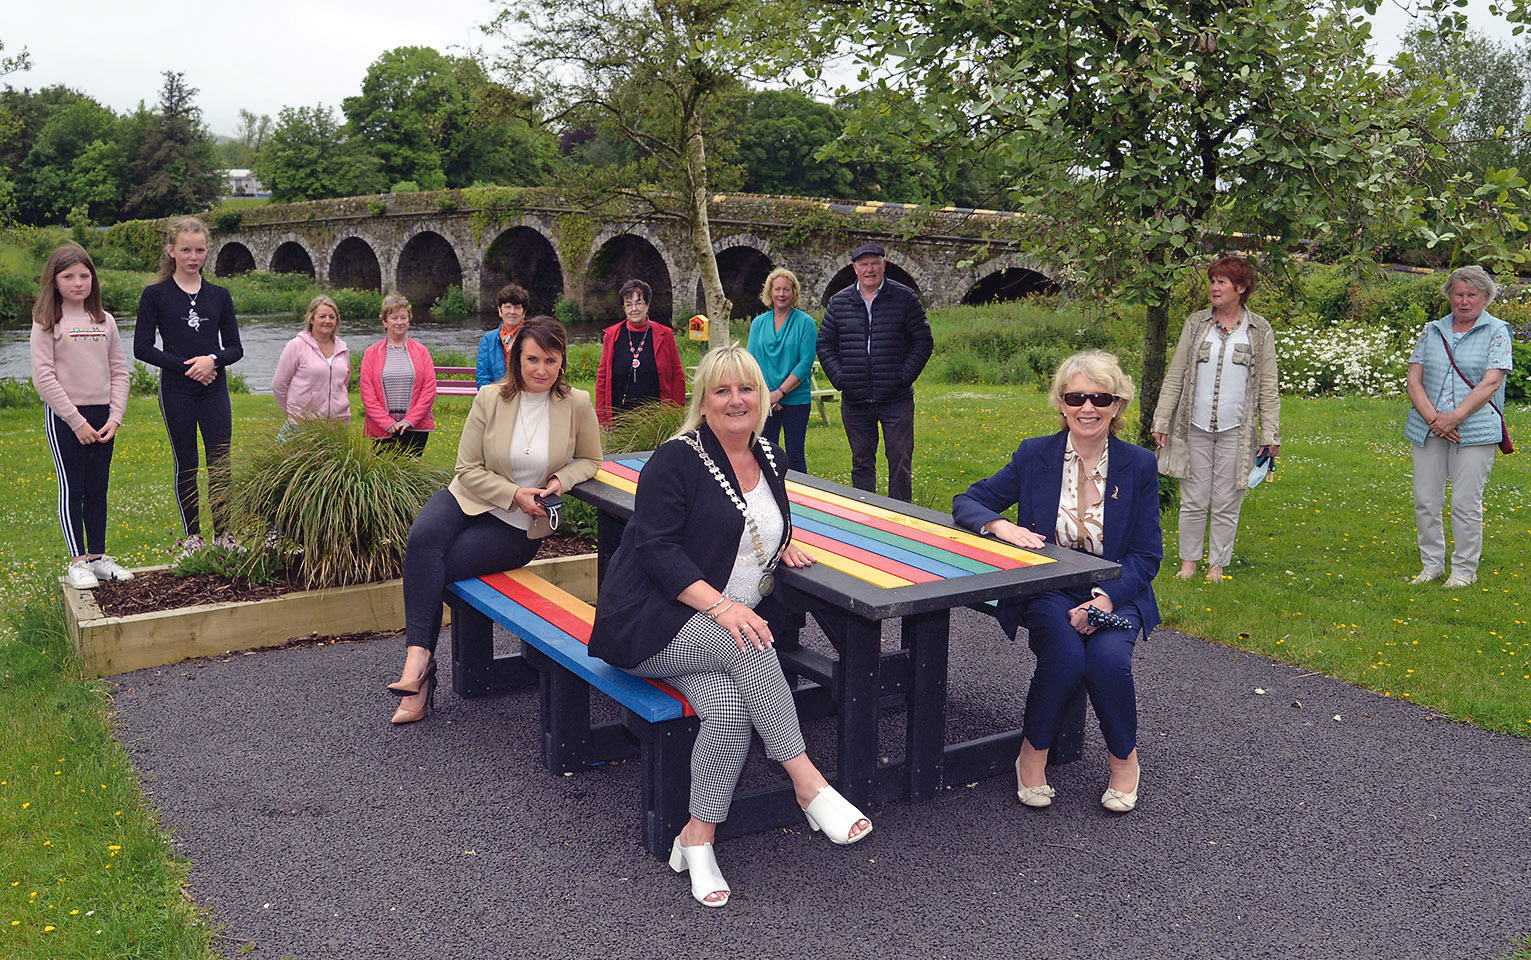 Heritage Trail launched for twin villages of Ballineen and Enniskeane